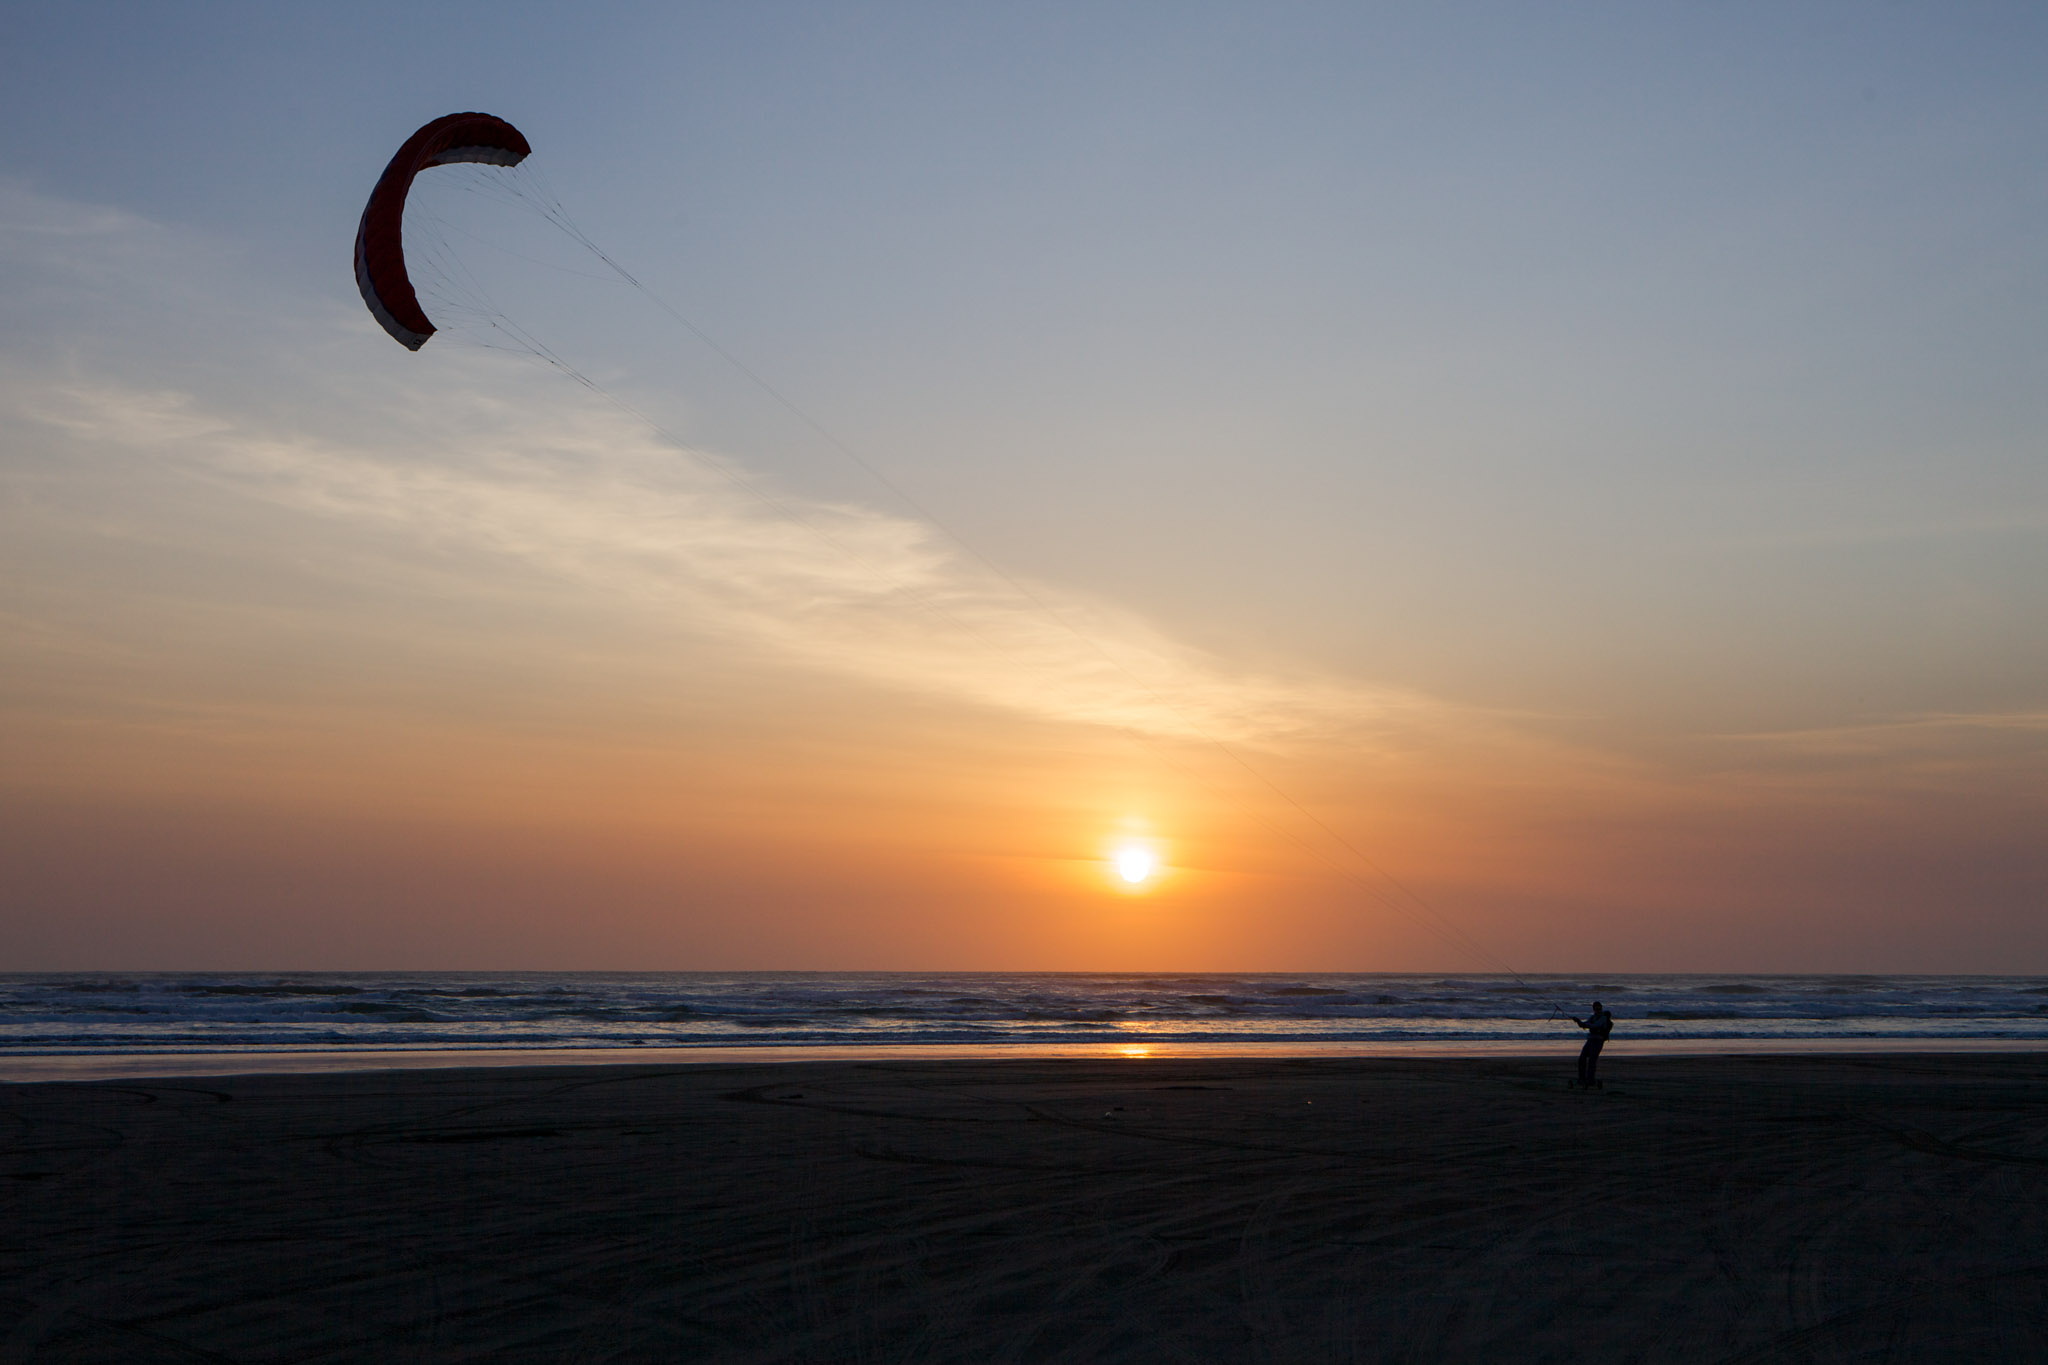 Kite boarding in the sunset